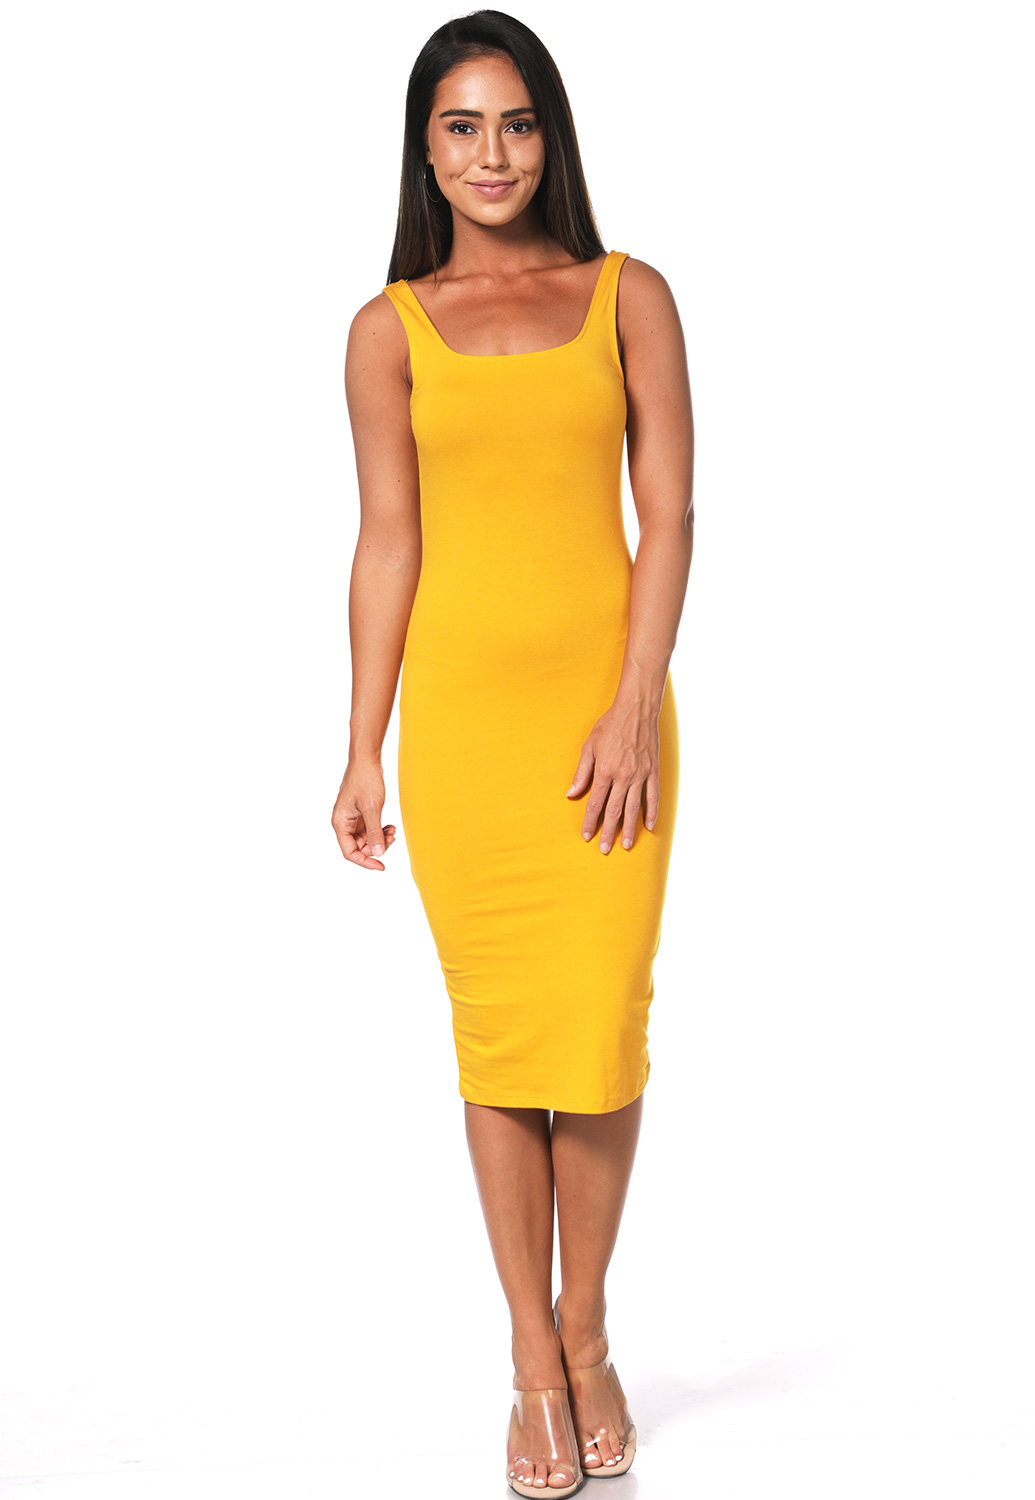 Cami Bodycon Dress